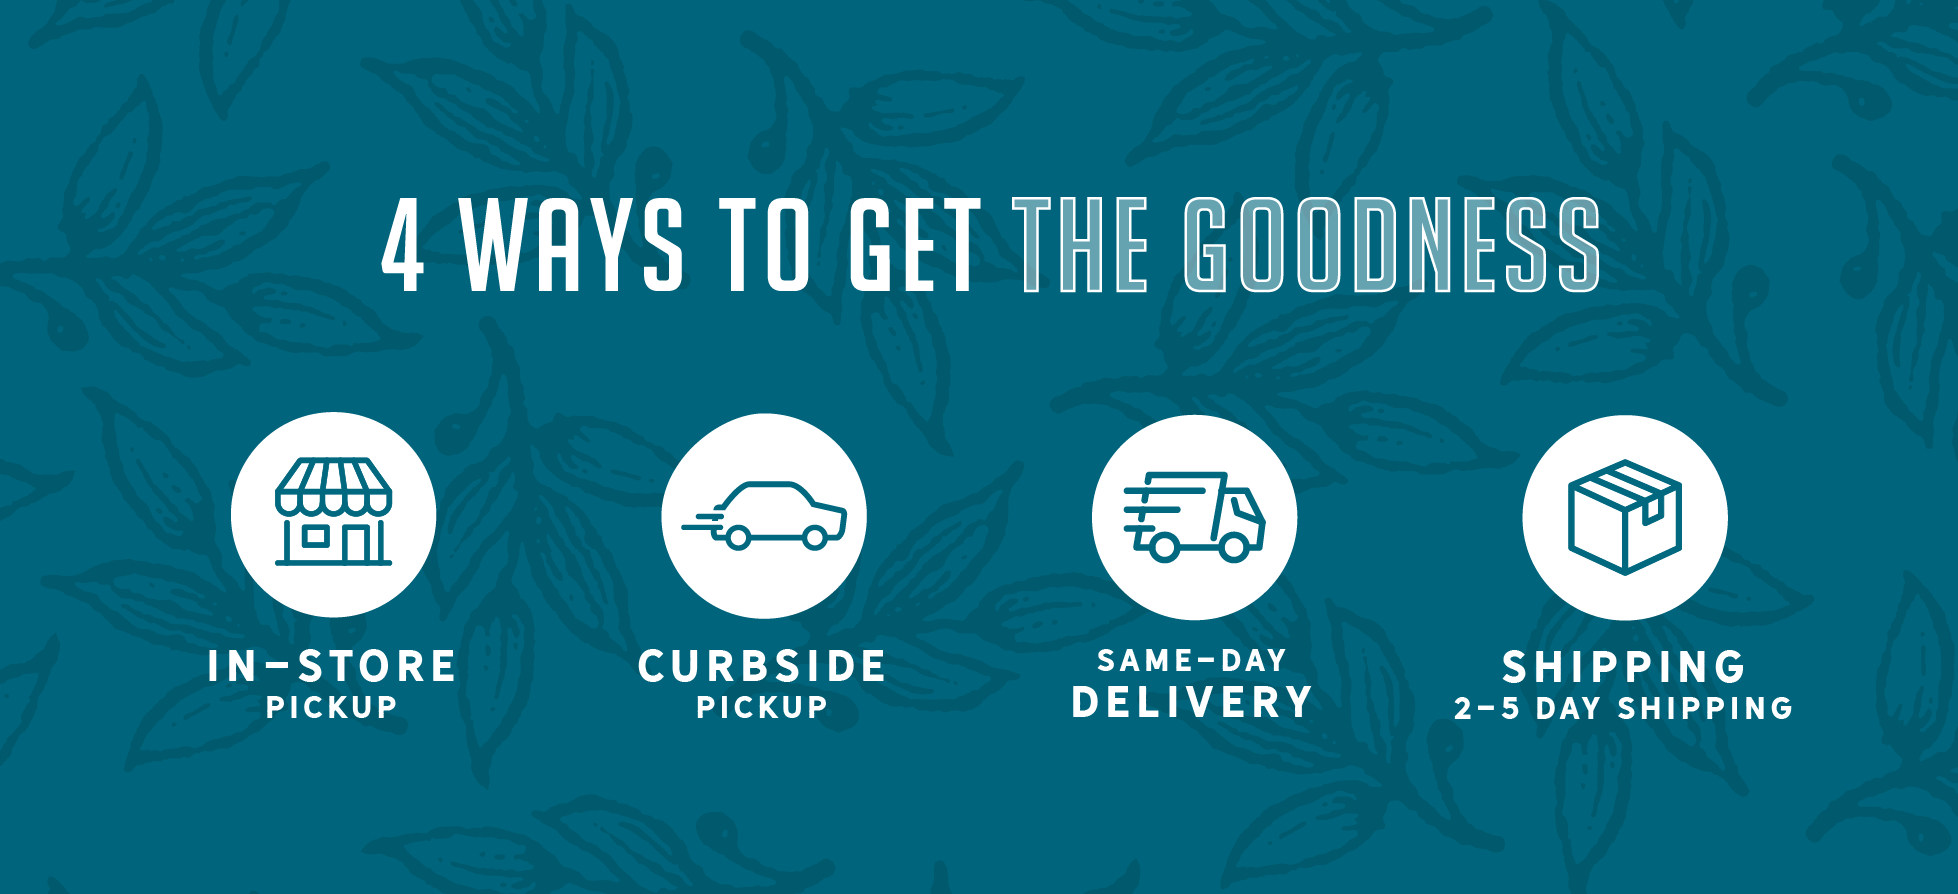 4 Ways to Get the Goodness. Online Shopping Options. In-Store Pickup. Curbside Pickup. Same-Day Delivery. 2-5 Day Shipping.